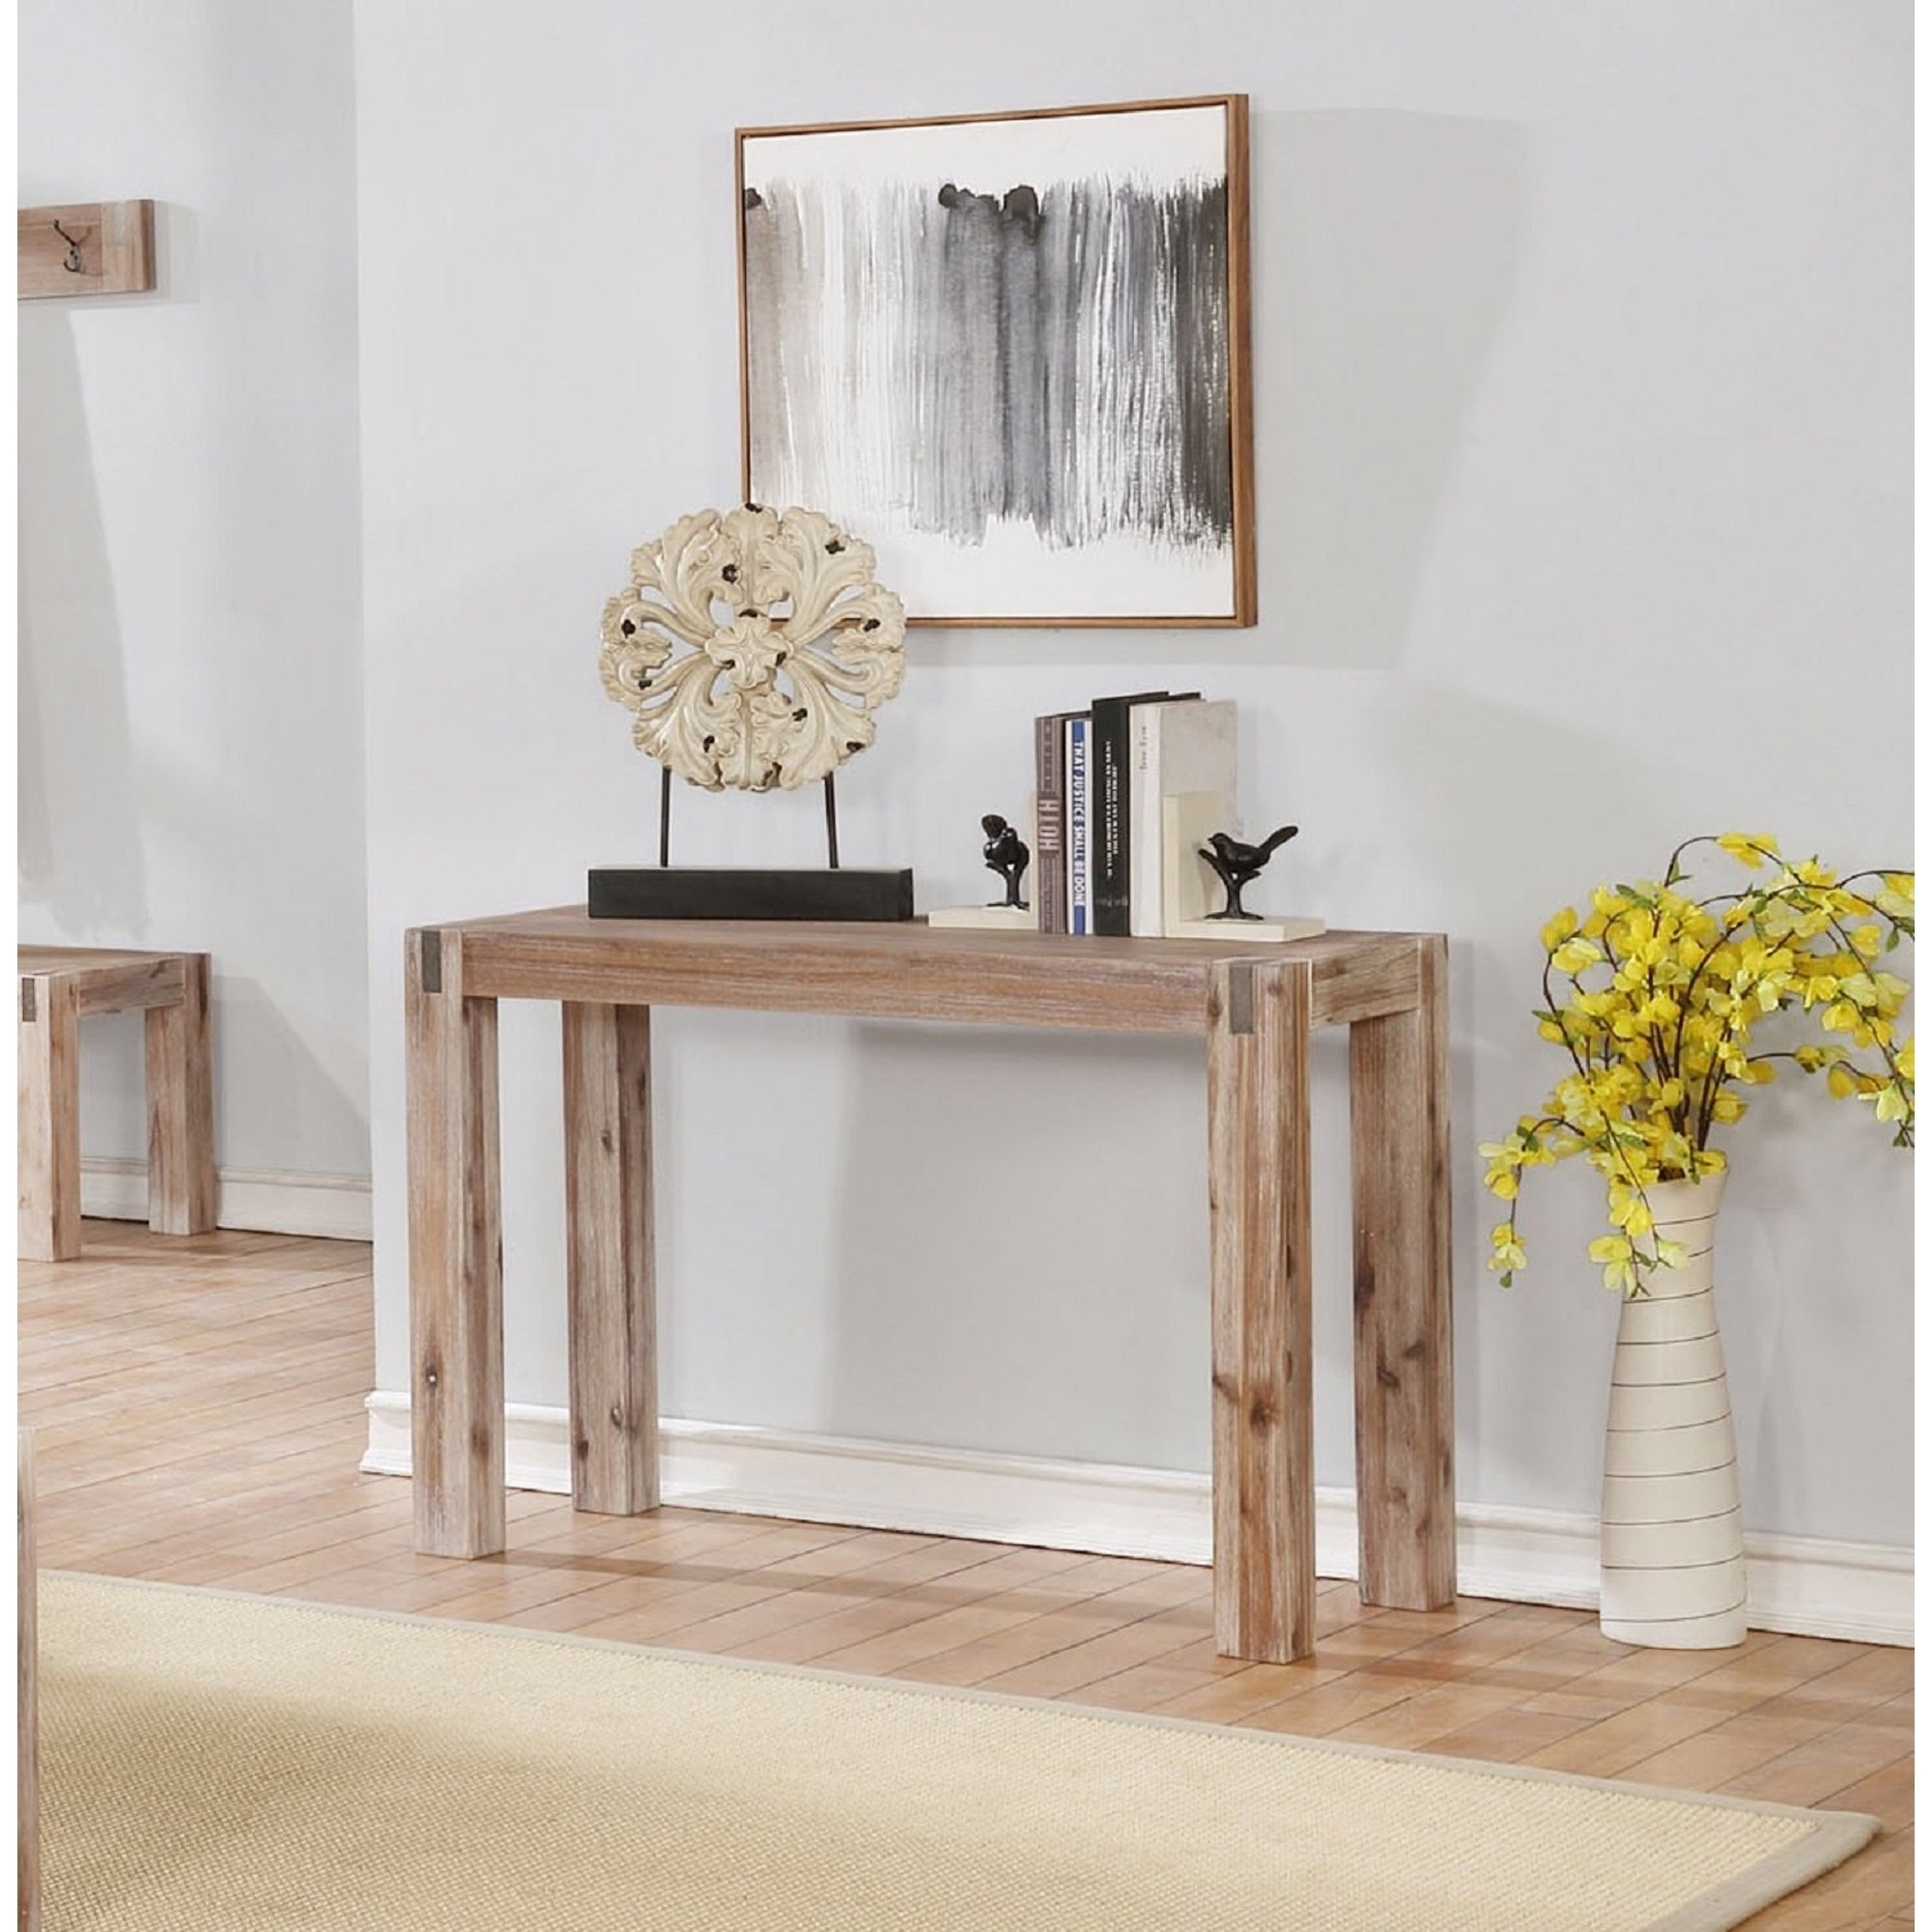 Shop Woodstock Acacia Wood With Metal Inset Media Console Table In Gunmetal Media Console Tables (View 14 of 30)